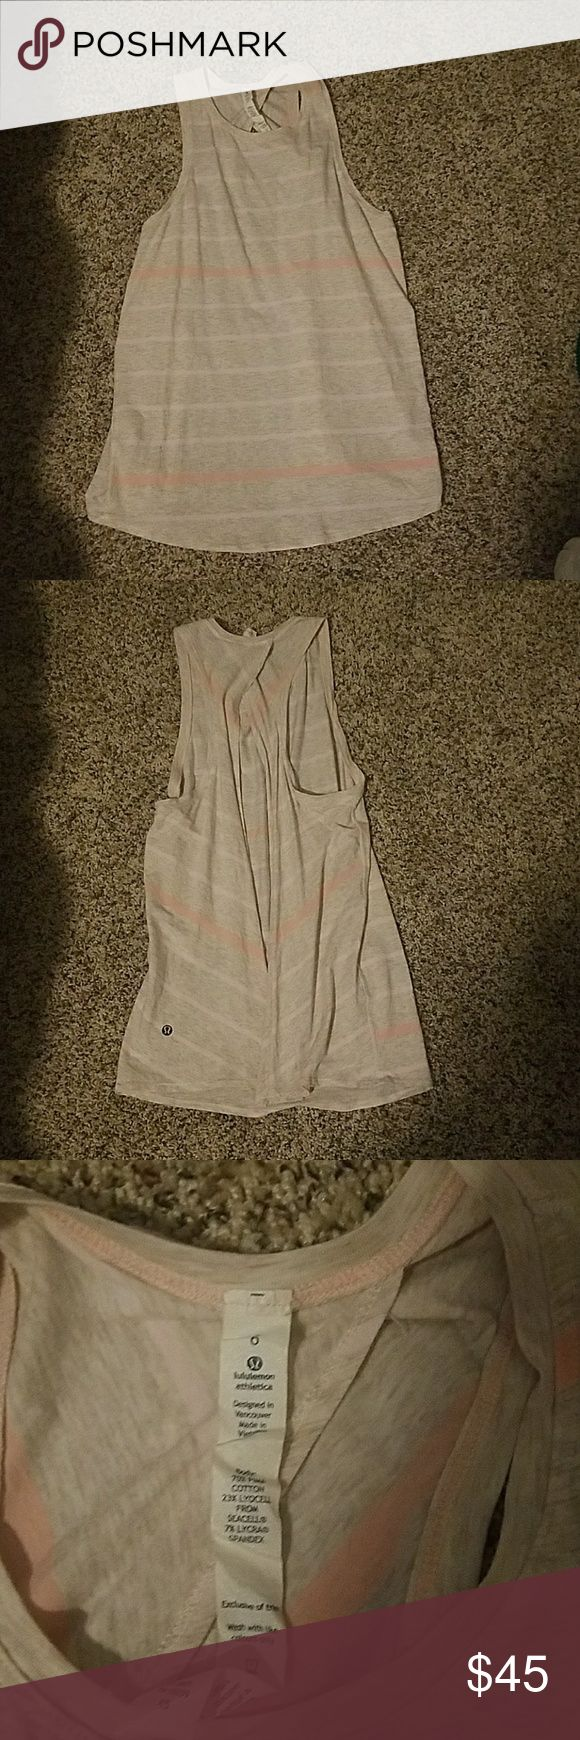 All Tied Up Tank Size 6 Excellent condition  NO TRADES PLEASE lululemon athletica Tops Muscle Tees